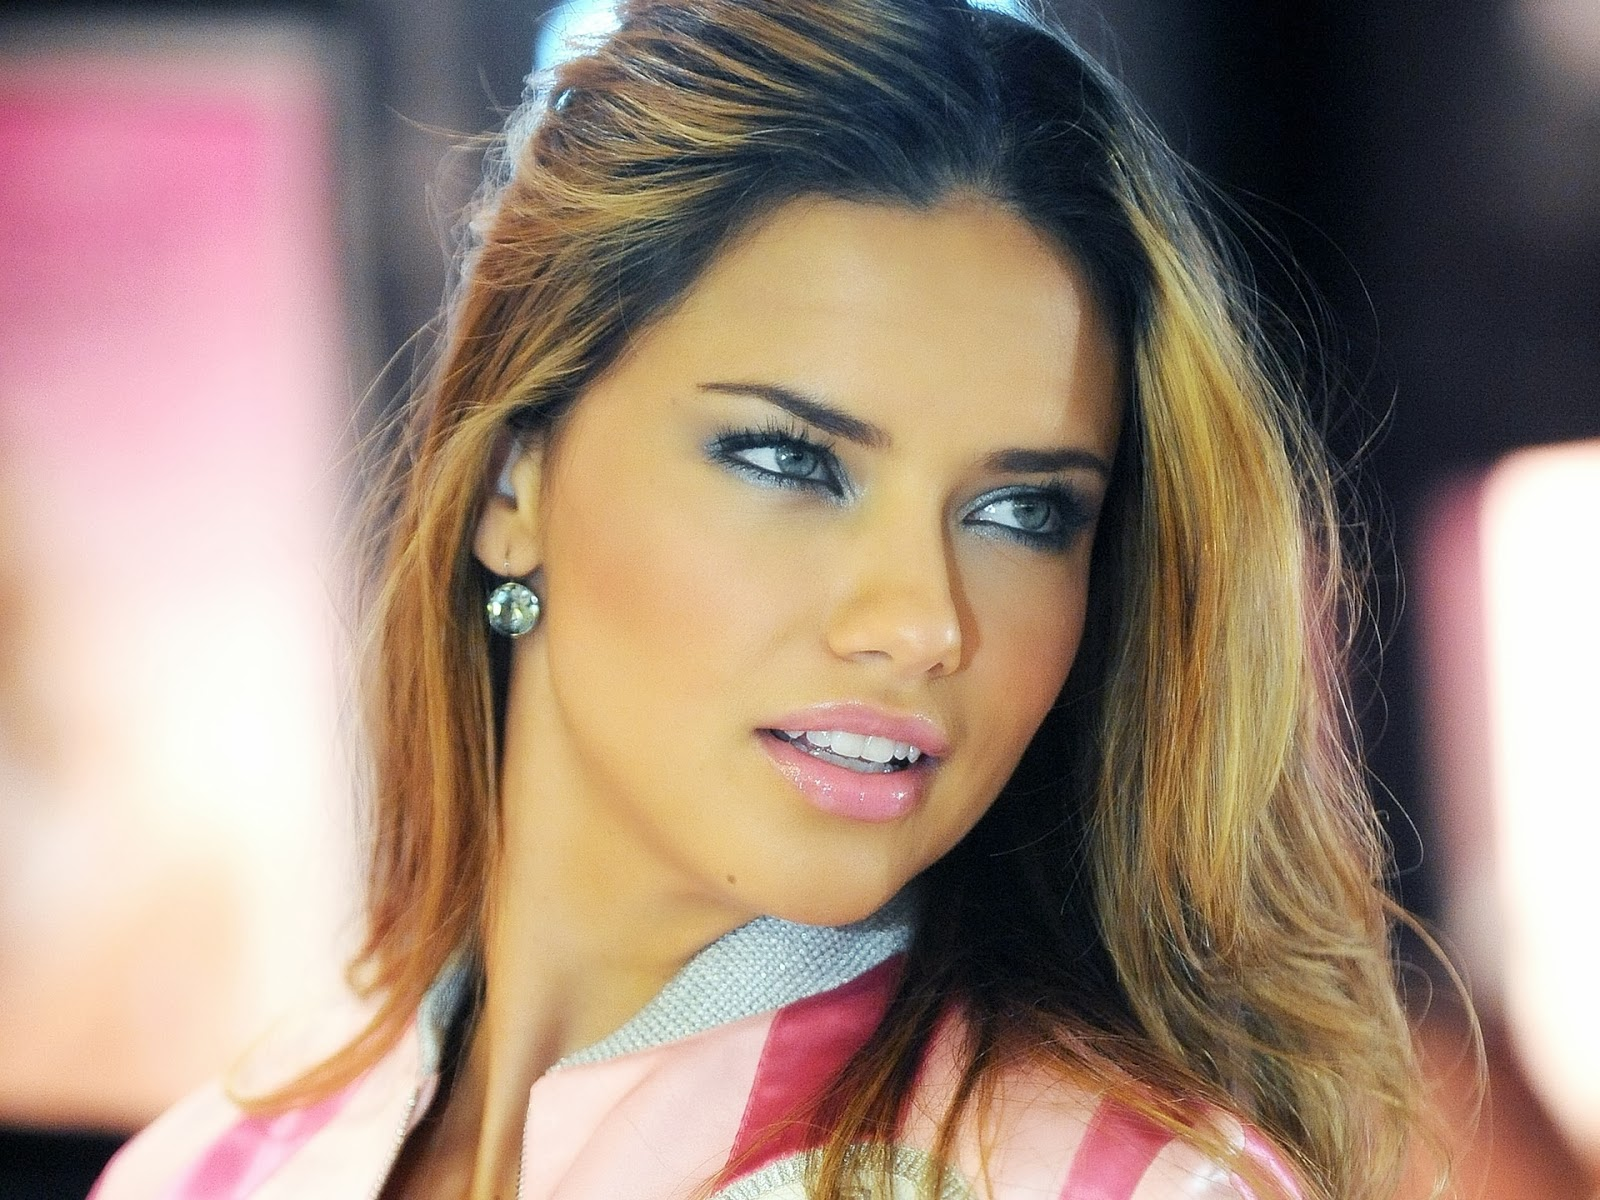 adriana lima beautiful image - photo #1